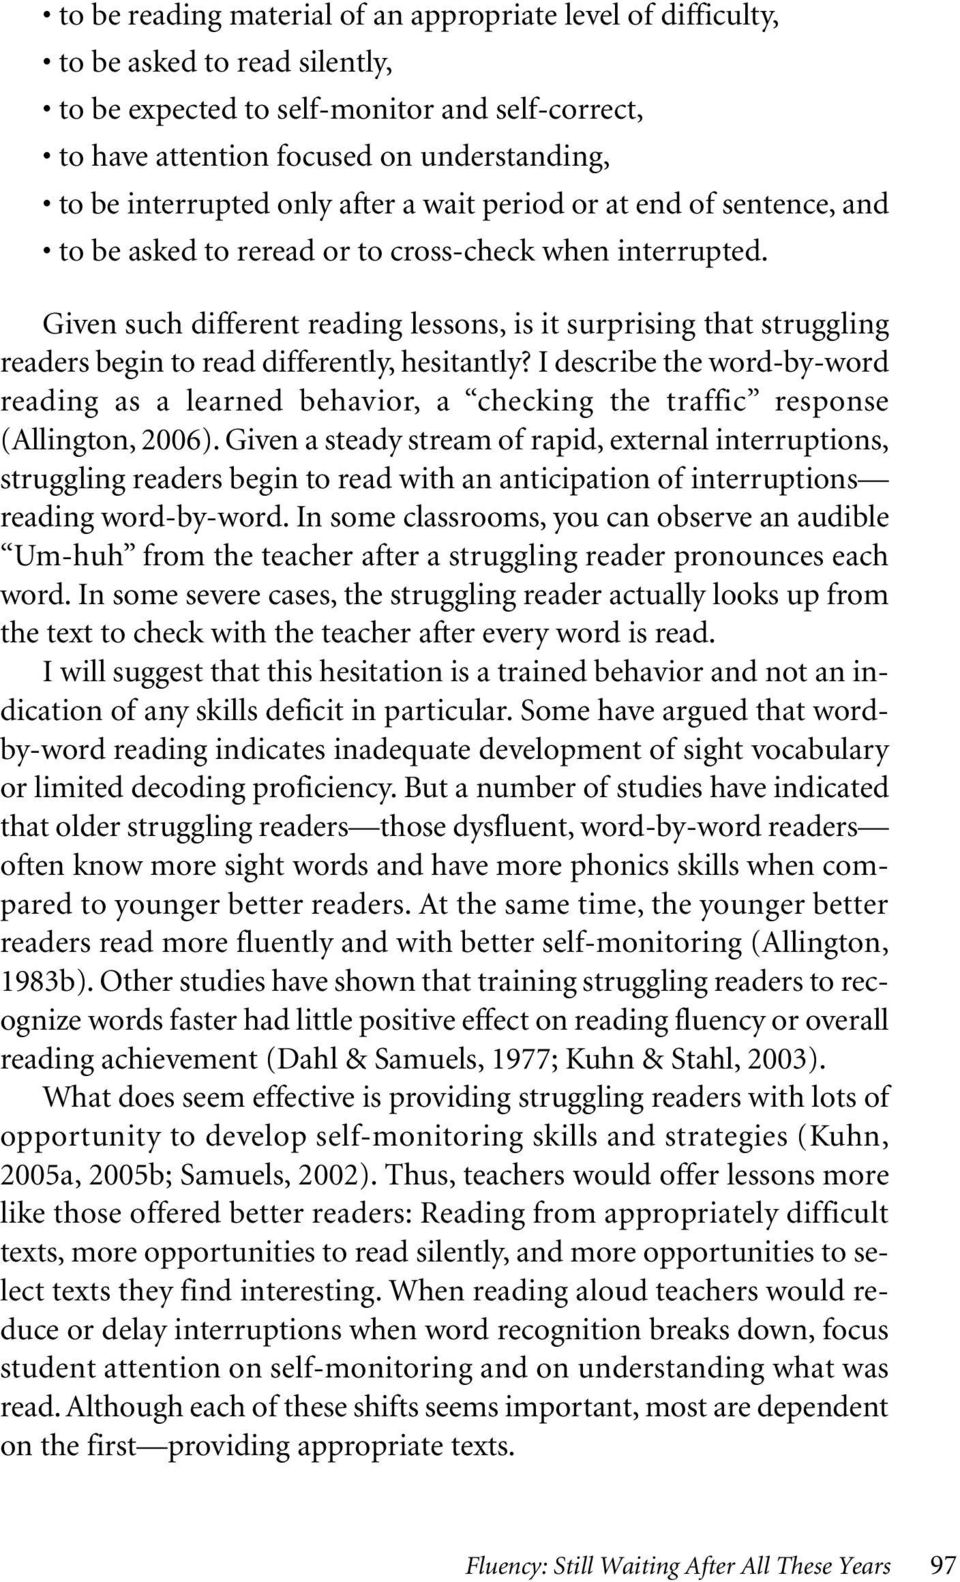 Given such different reading lessons, is it surprising that struggling readers begin to read differently, hesitantly?